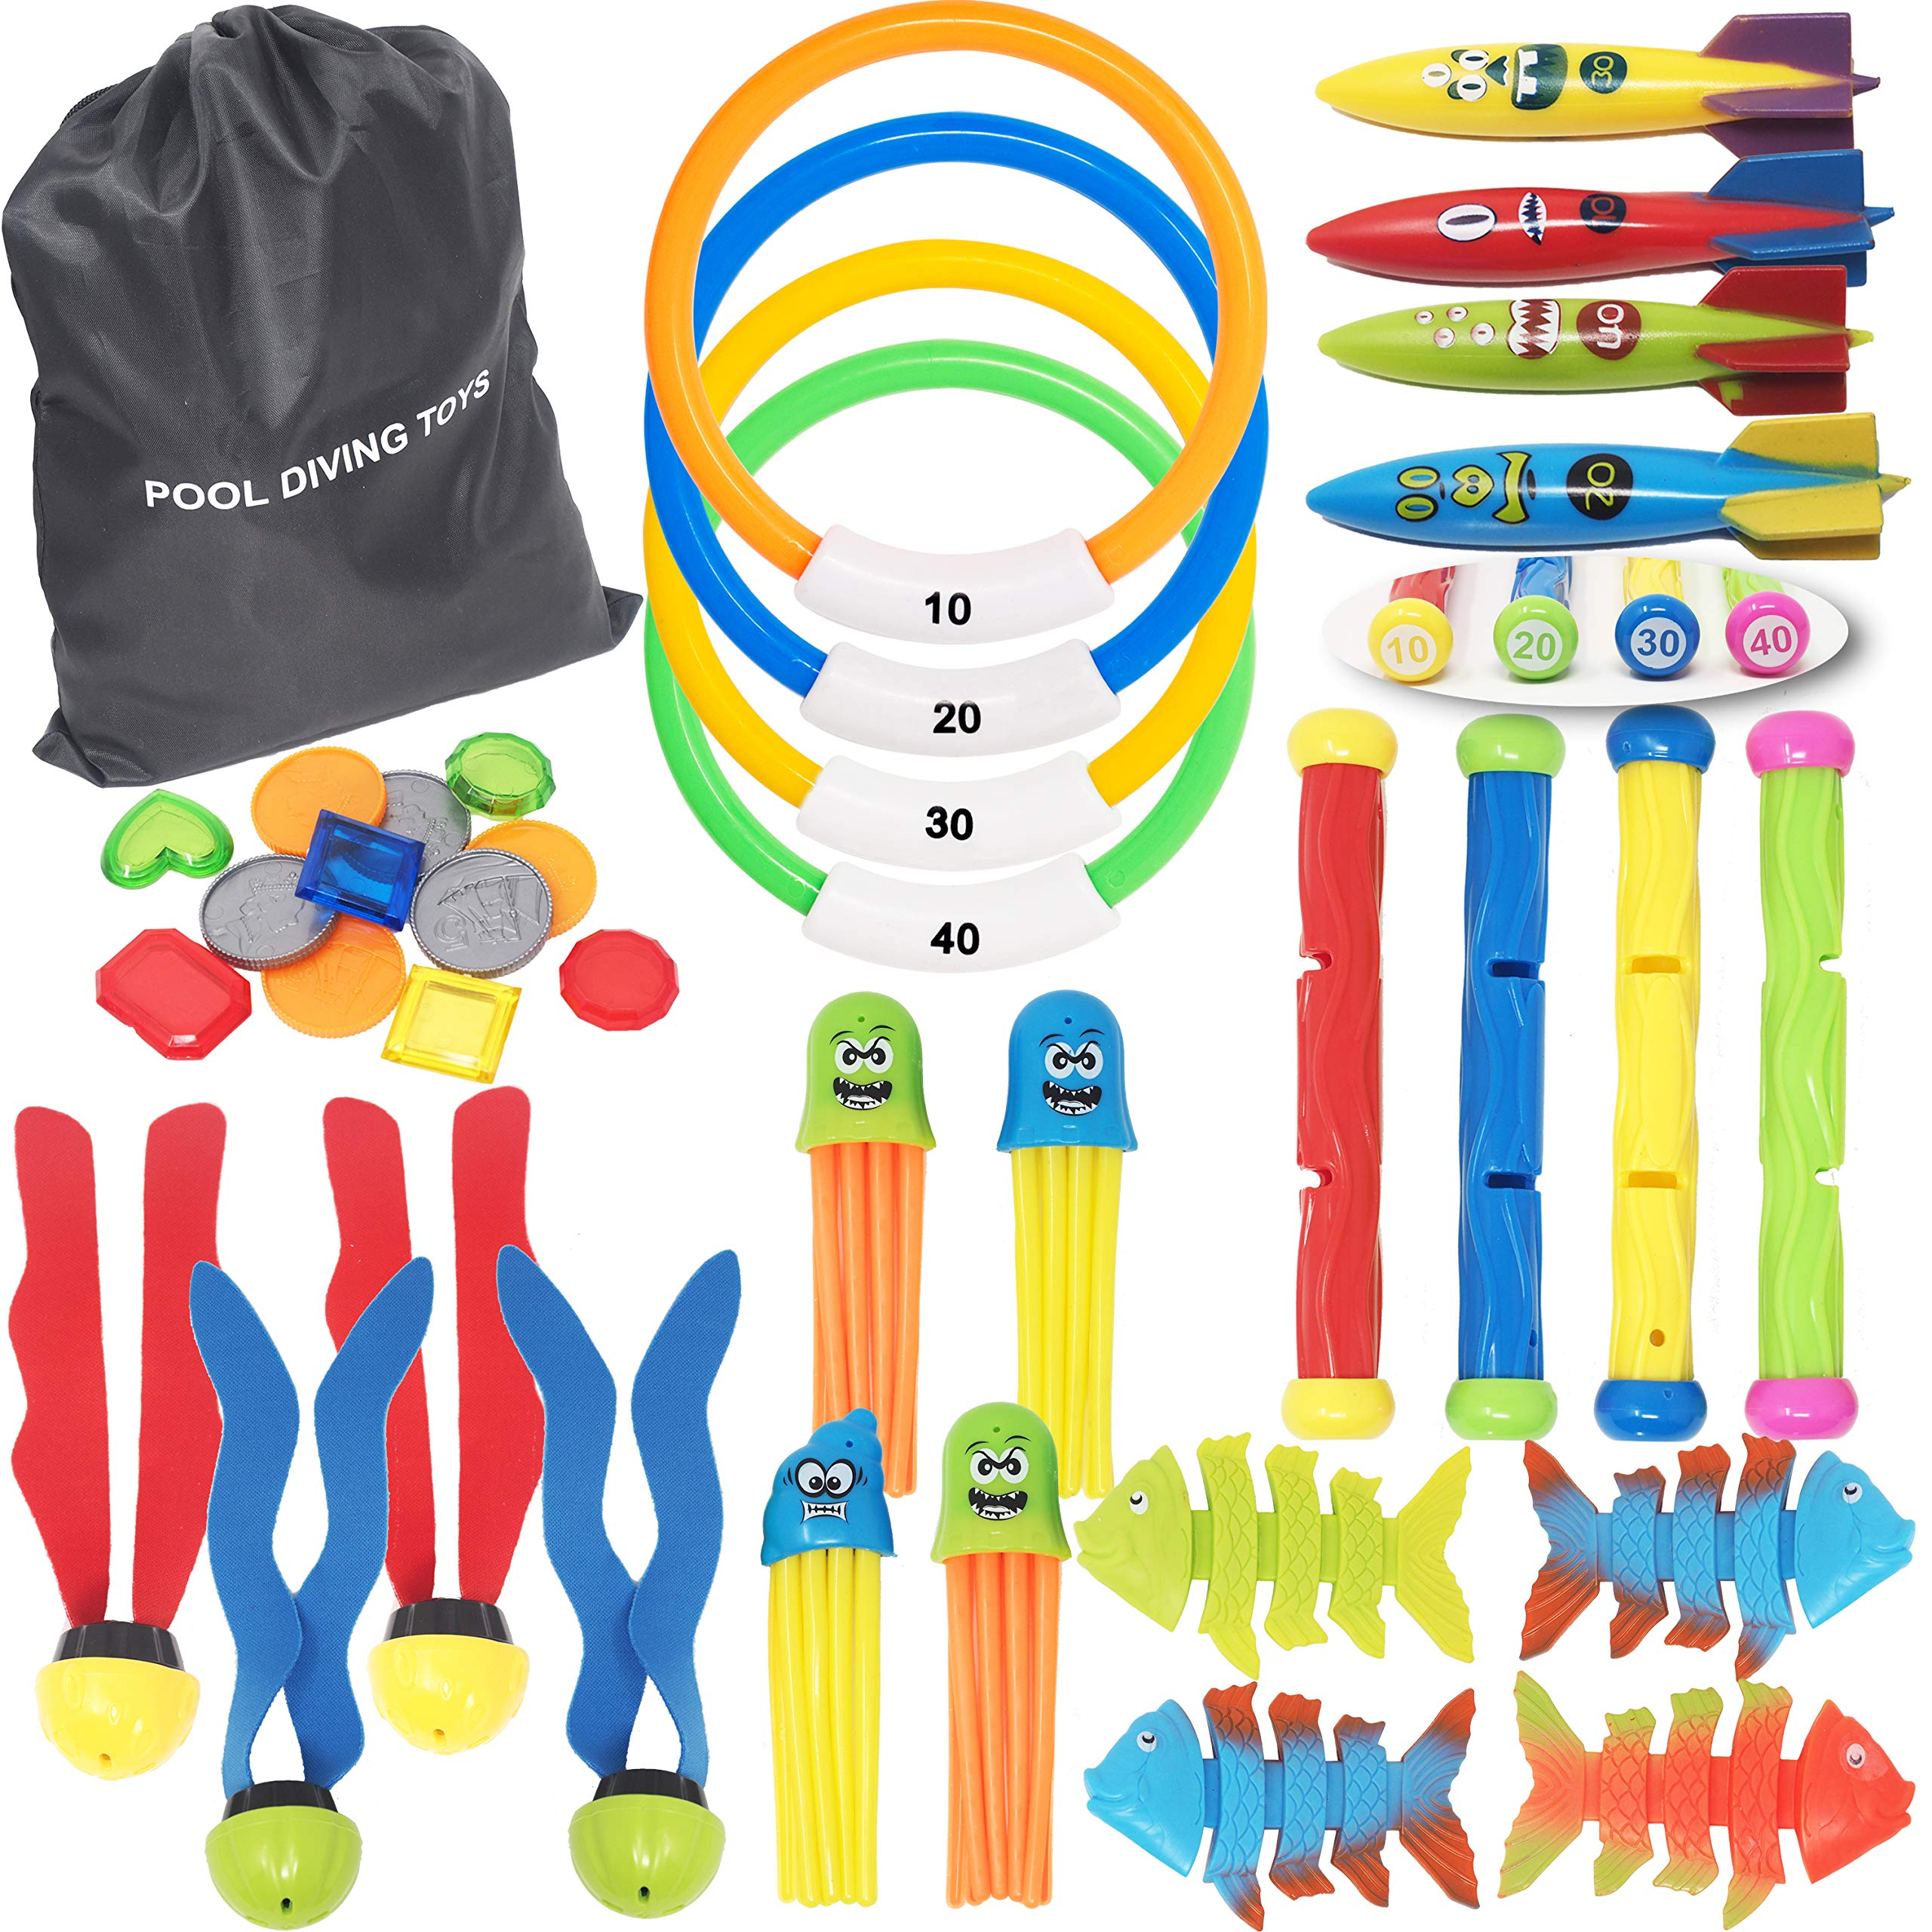 36 PCs Diving Pool Toys Deluxe Set w/ 4 Diving Sticks; 4 Diving Rings; 4 Toypedo Bandits; 12 Pirate Coins & Treasures; 4 Stringy Octopus; 4 Fish Toys; 4 Toy Balls for Kids Swimming Training Game by Kiddokids